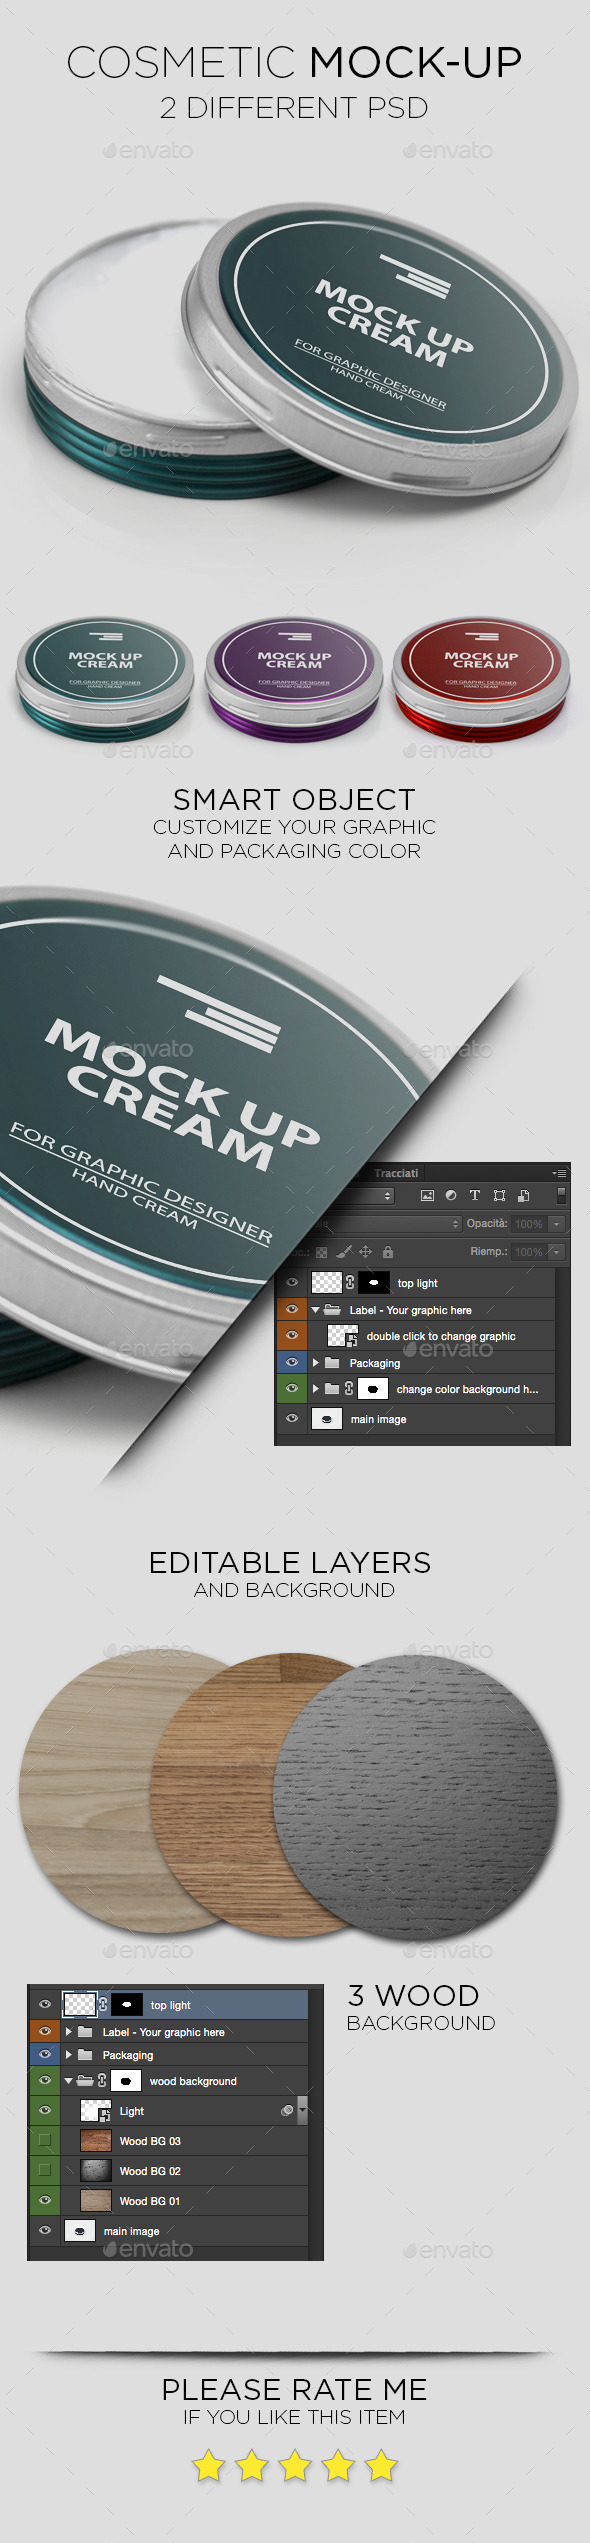 Cosmetic Cream Mock-Up - Beauty Packaging